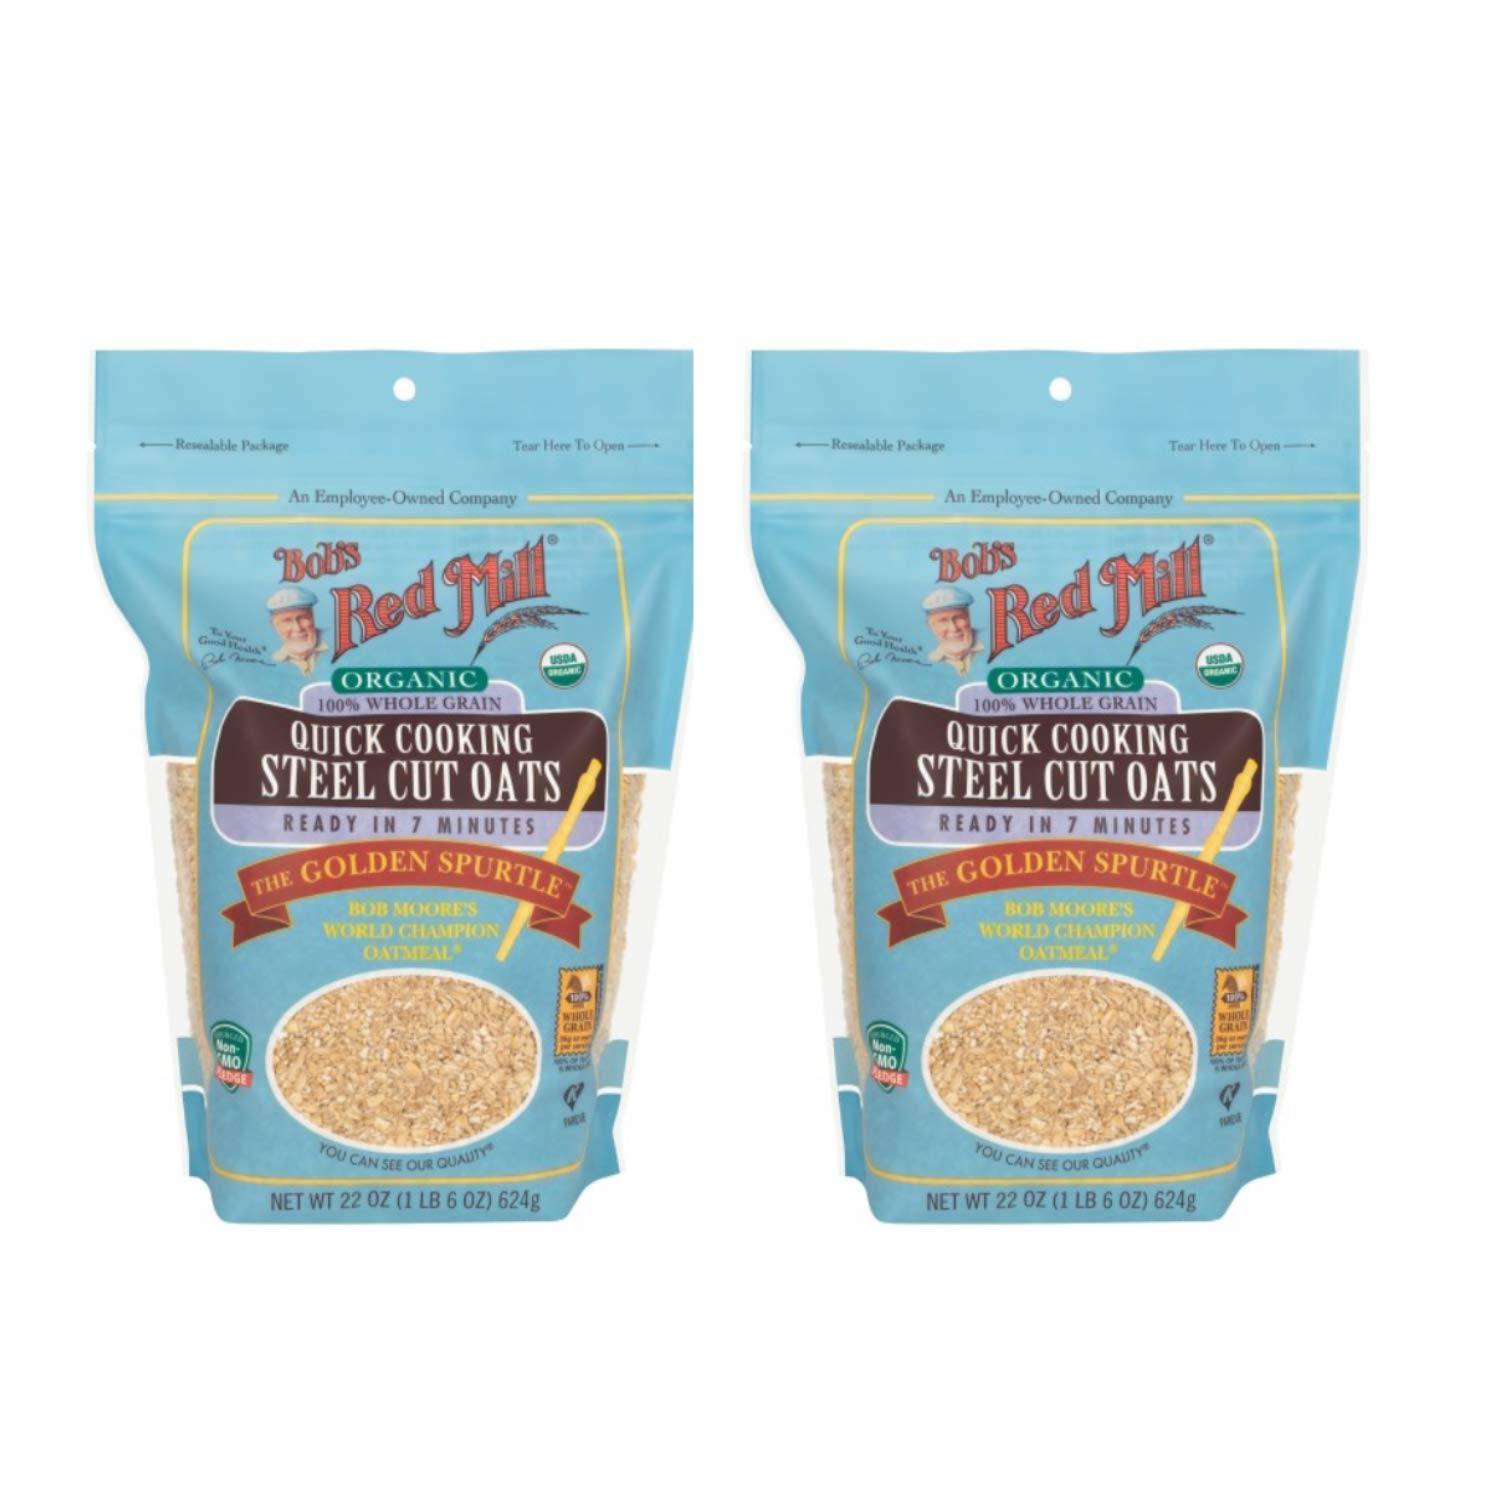 Bob's Red Mill Organic Quick Cooking Steel Cut Oats 22 oz (Two Pack) - Organic Quick Cook Steel Cut Oats - 2 Pack Whole, Organic Oat Groats (22 oz bags, 44 oz total)